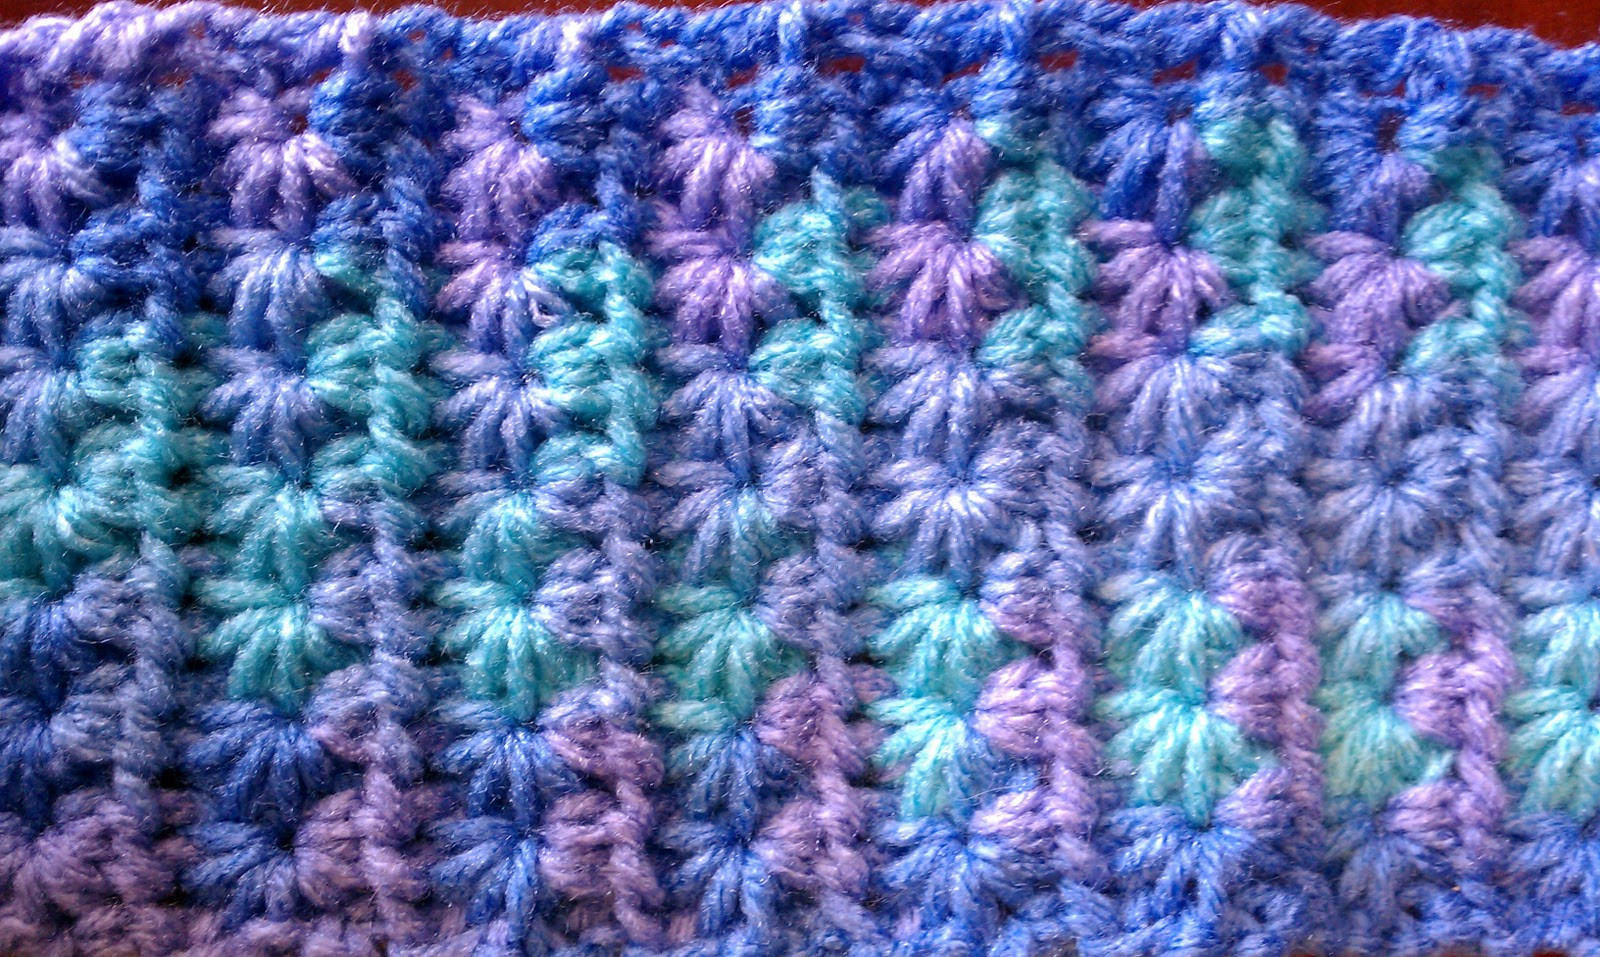 Crochet Star Stitch Tutorial and Patterns